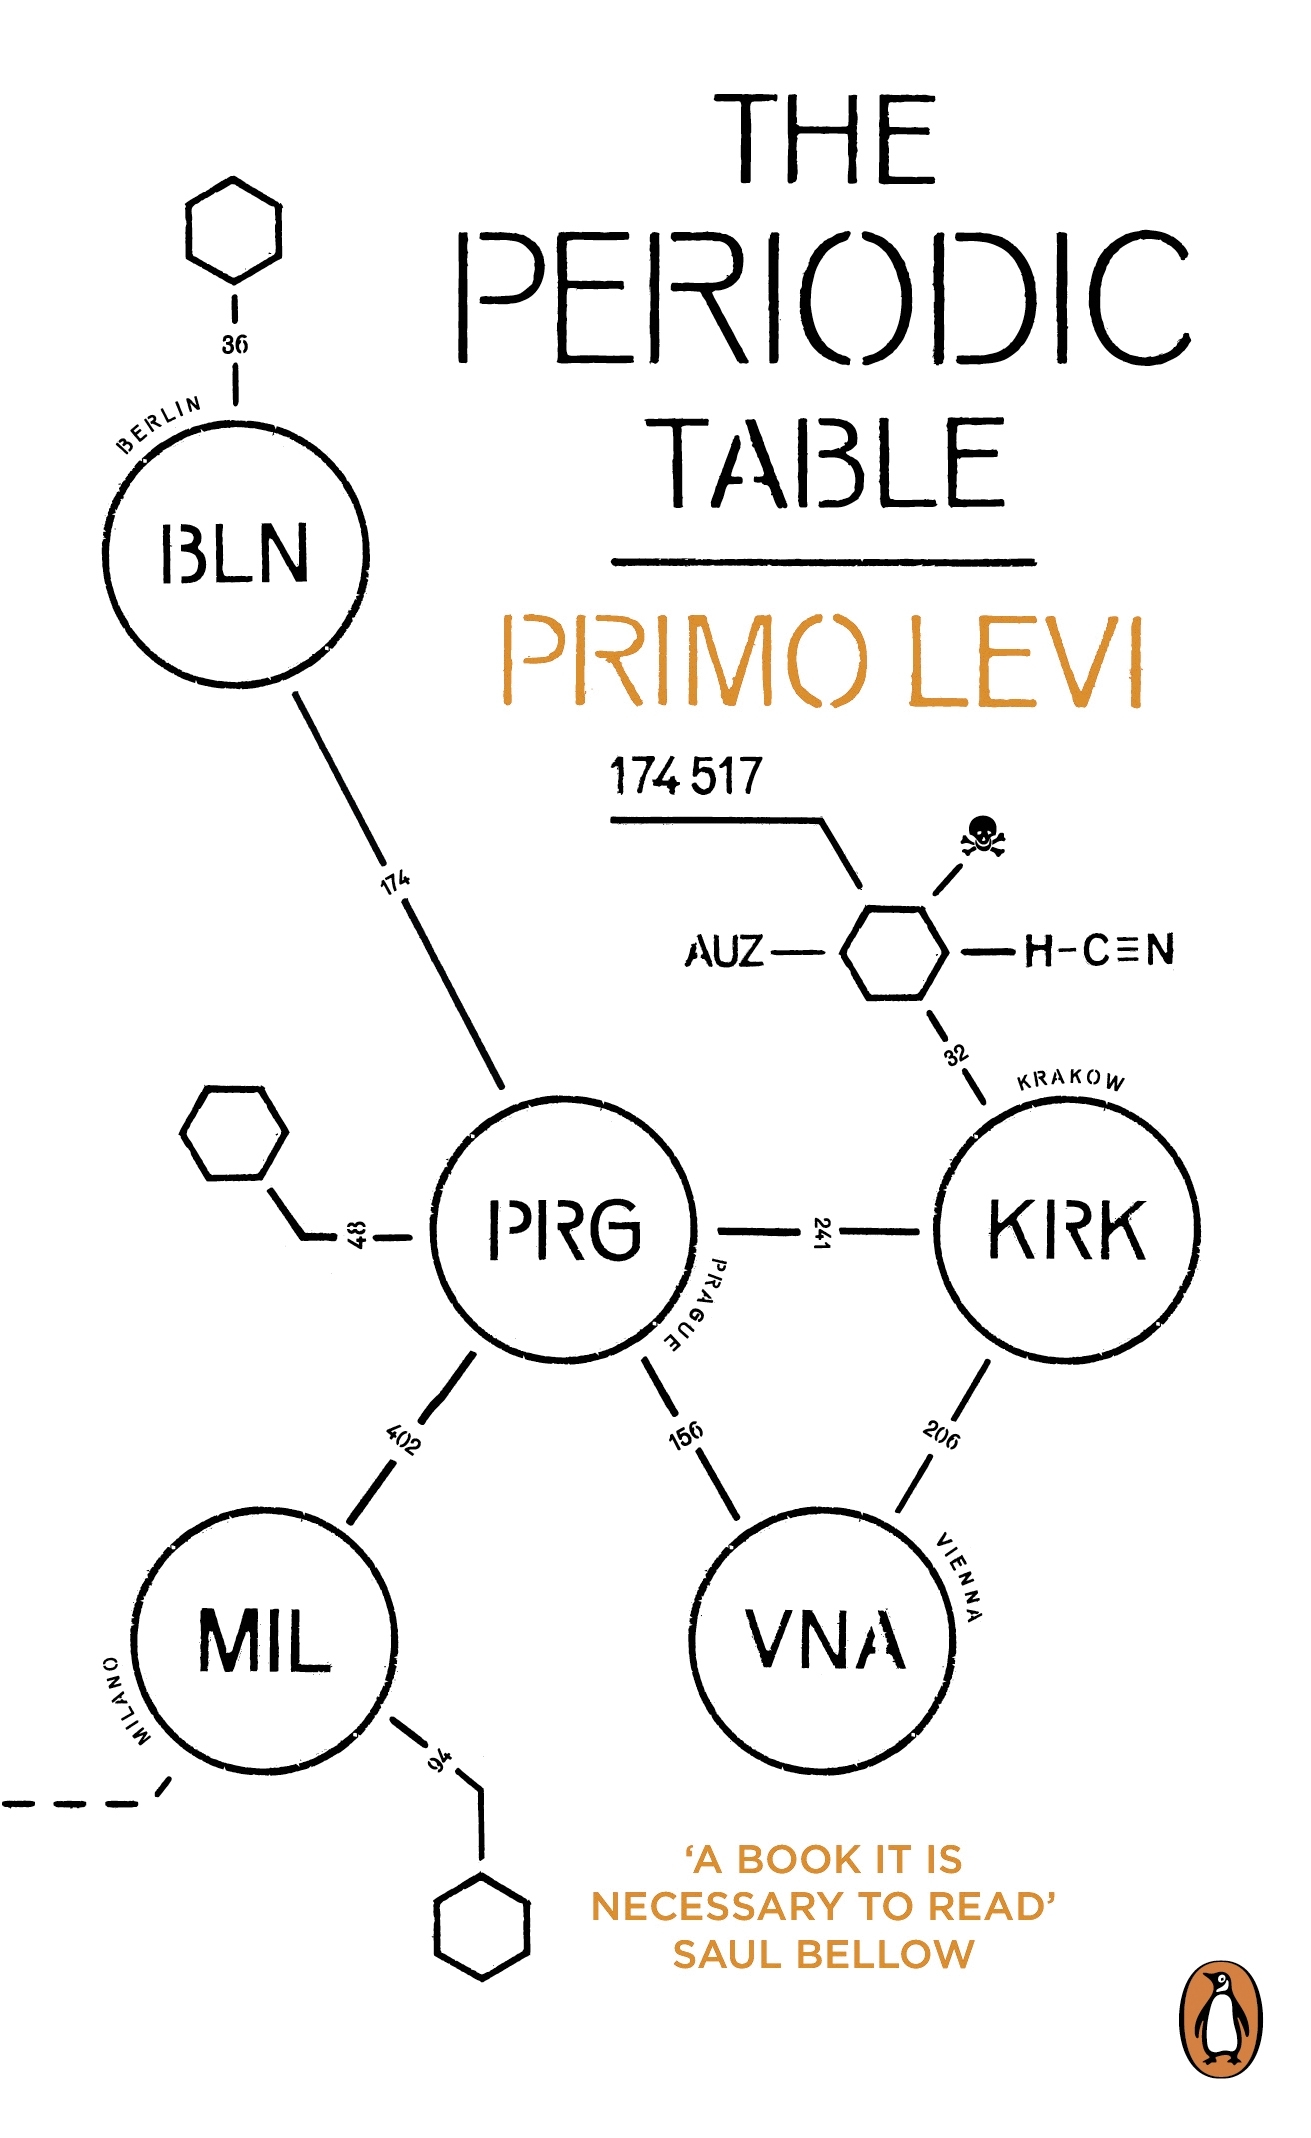 The periodic table by primo levi penguin books australia the periodic table by primo levi gamestrikefo Choice Image